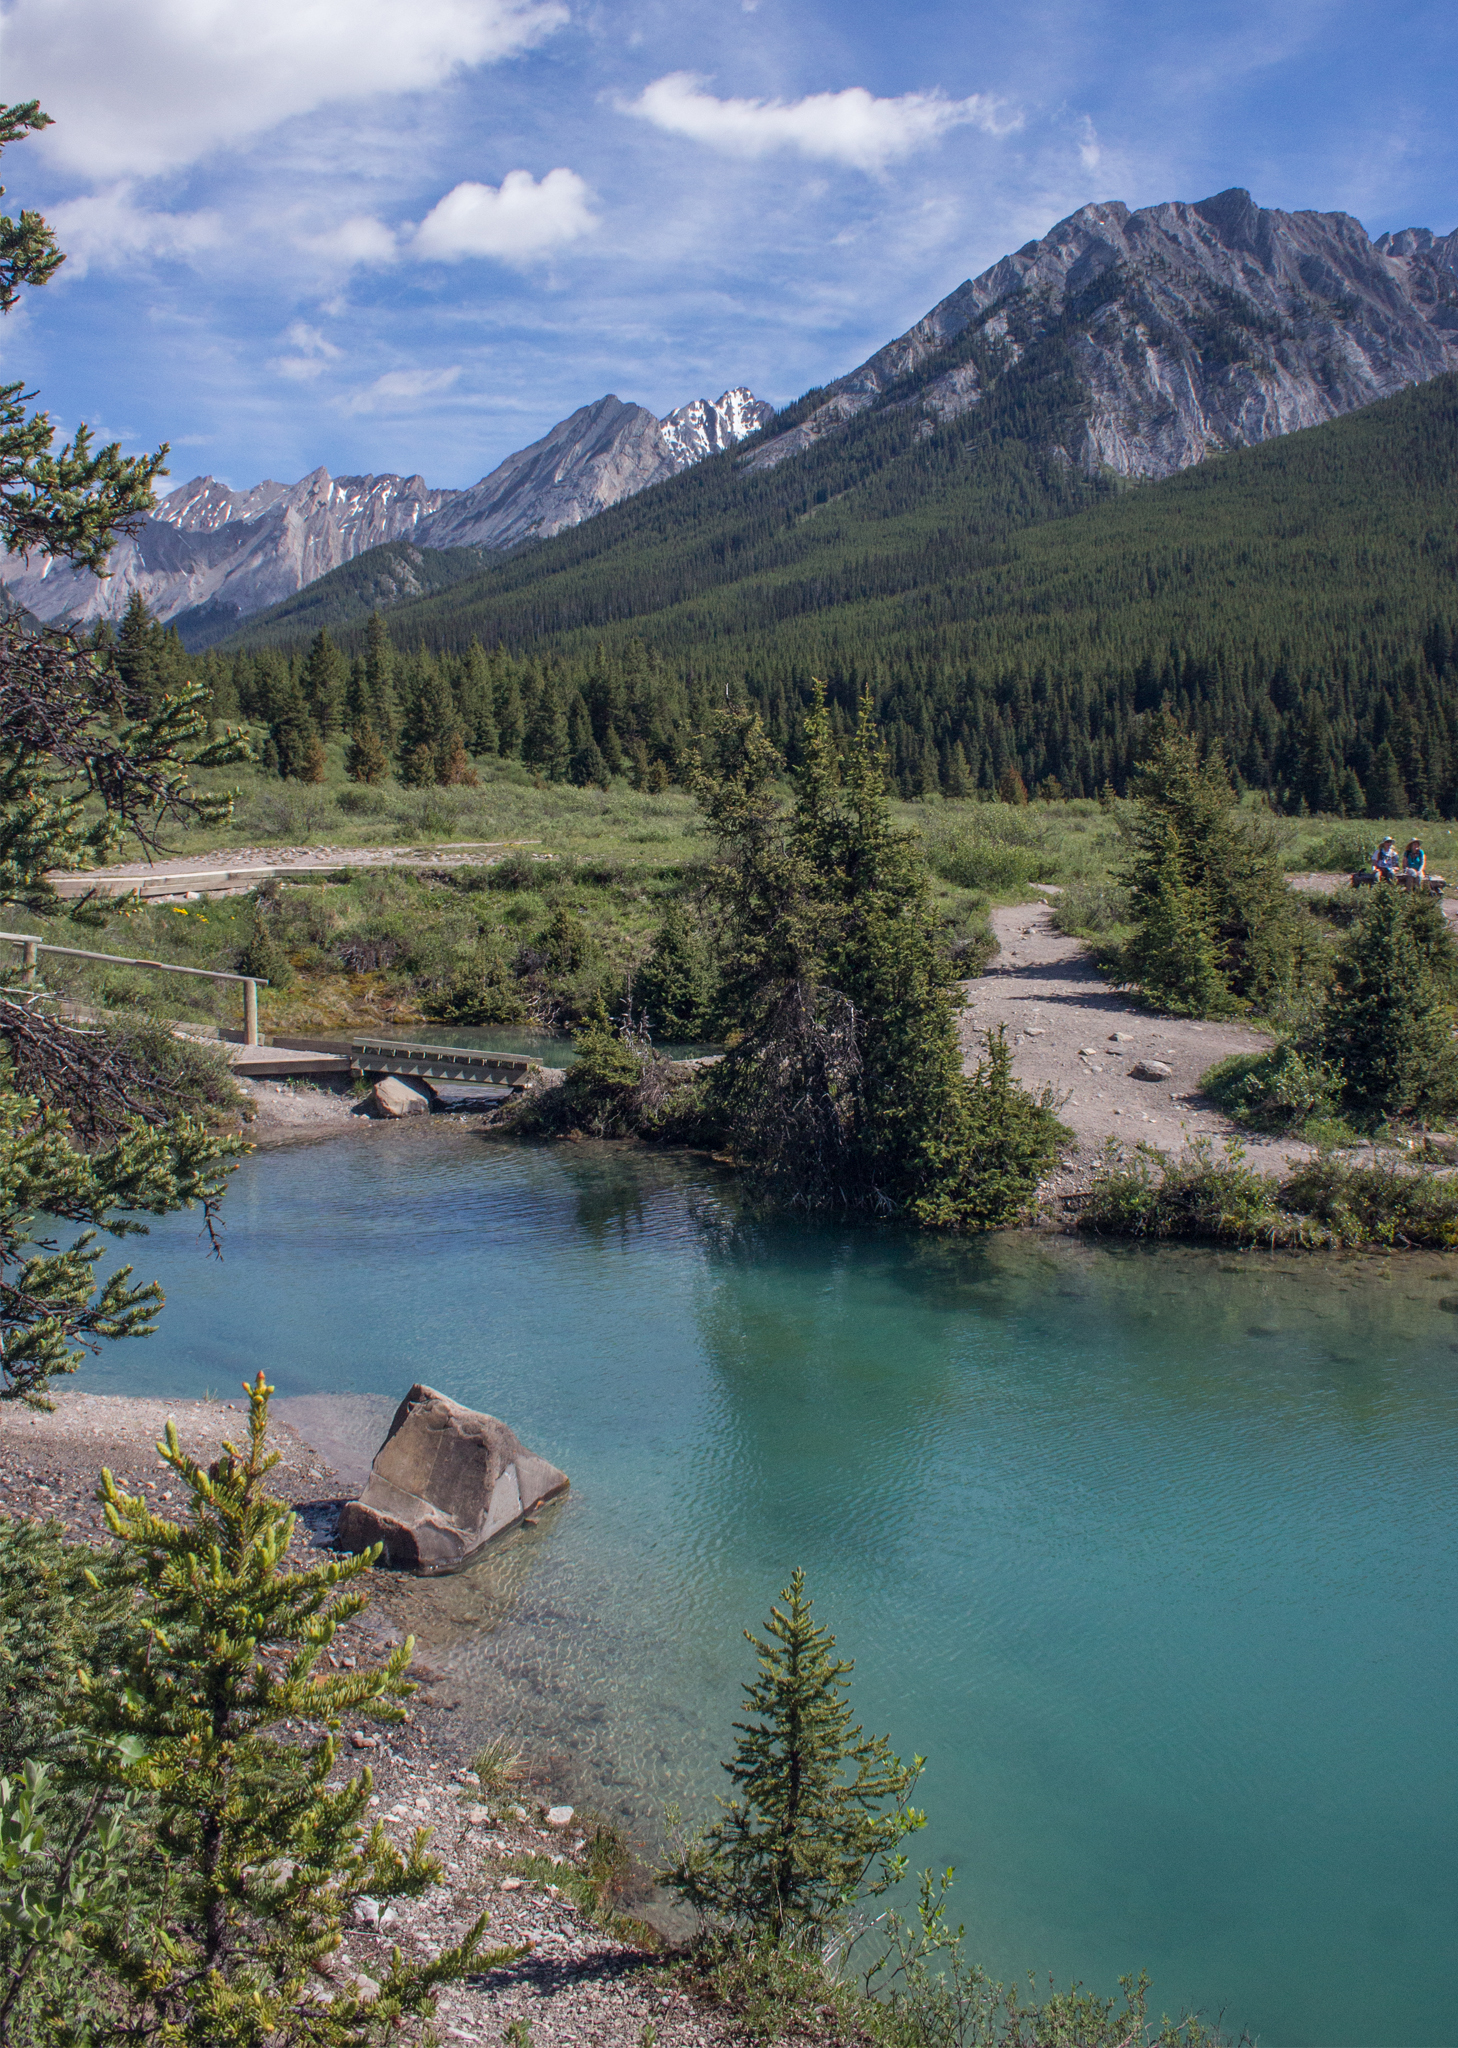 A quick guide to hiking Johnston Canyon & the Inkpots (you really should go to the Inkpots)